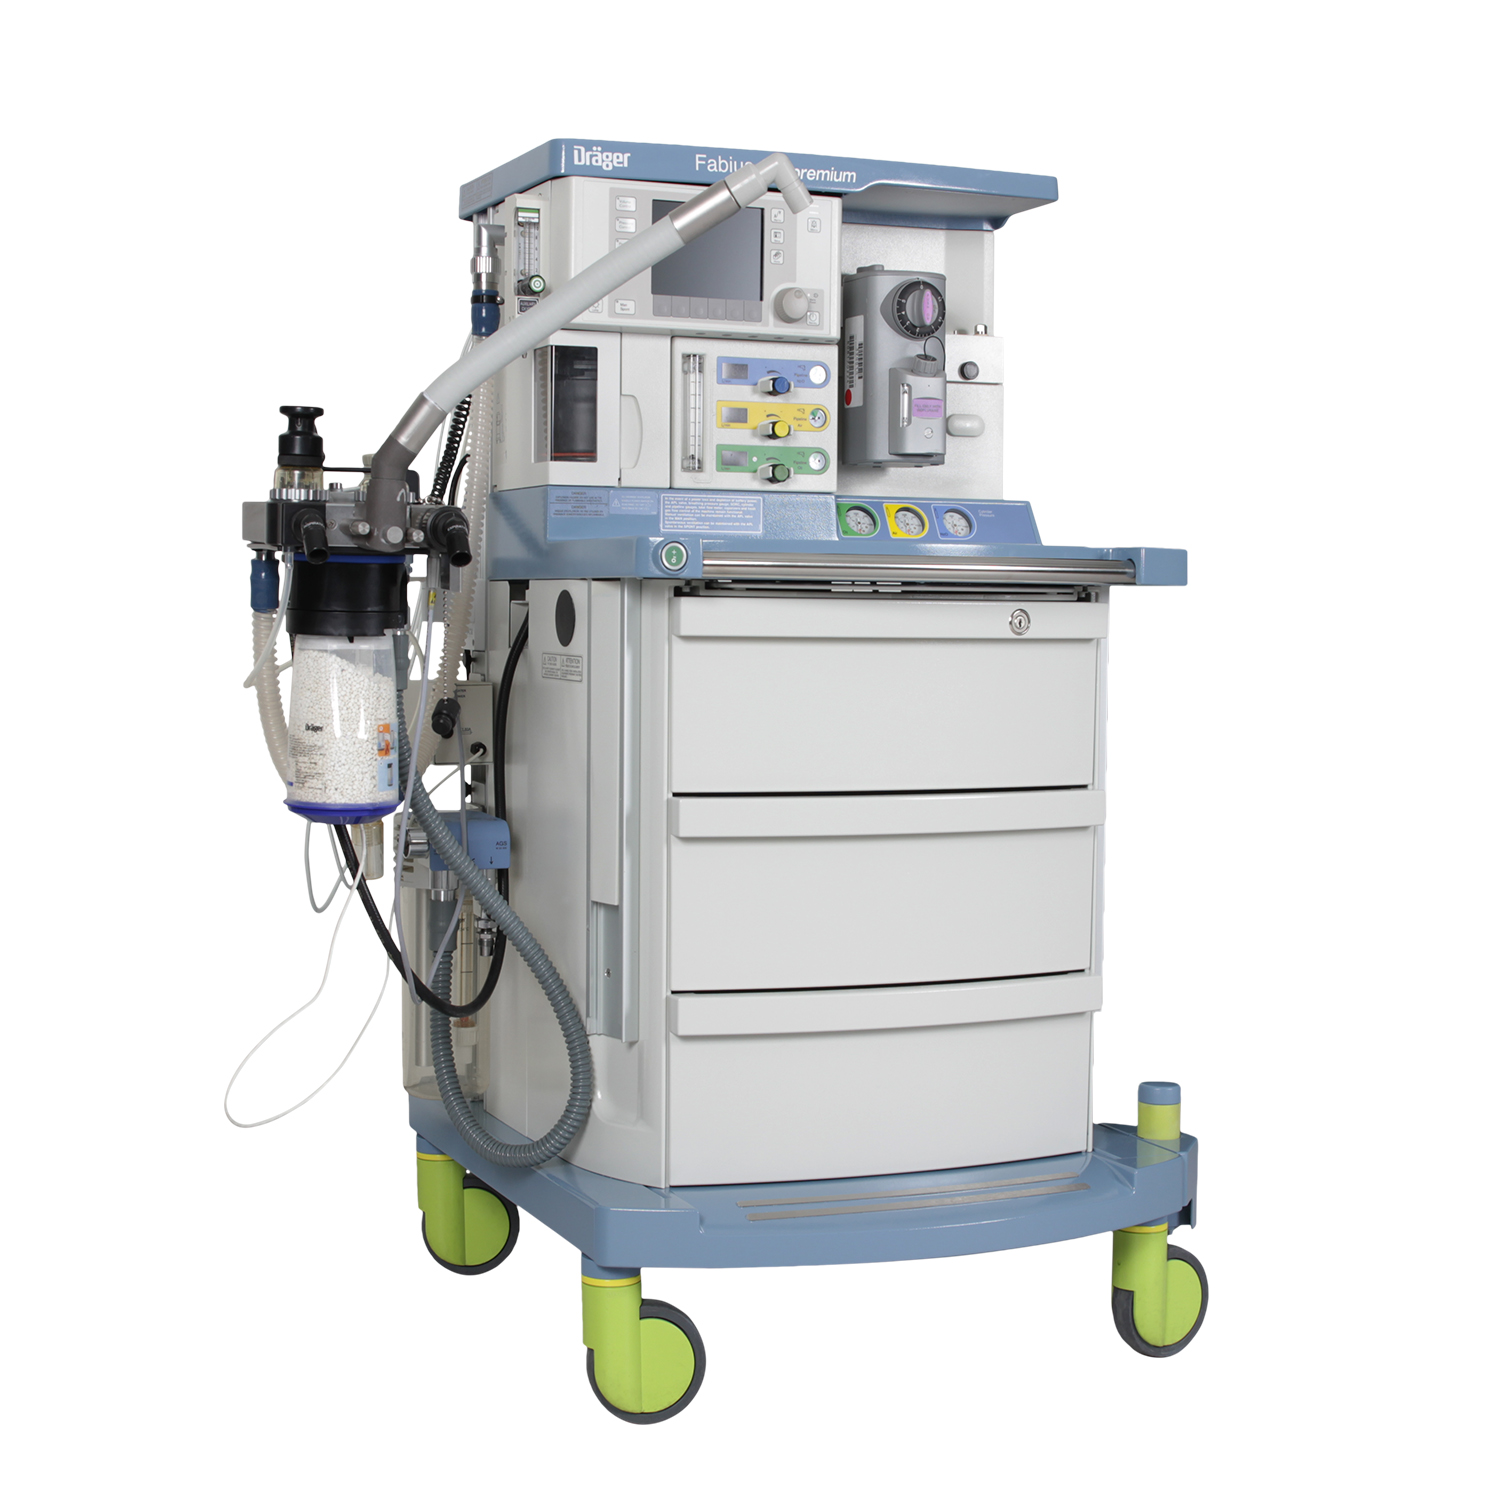 Machine Anesthesia Machines Models And Pricing